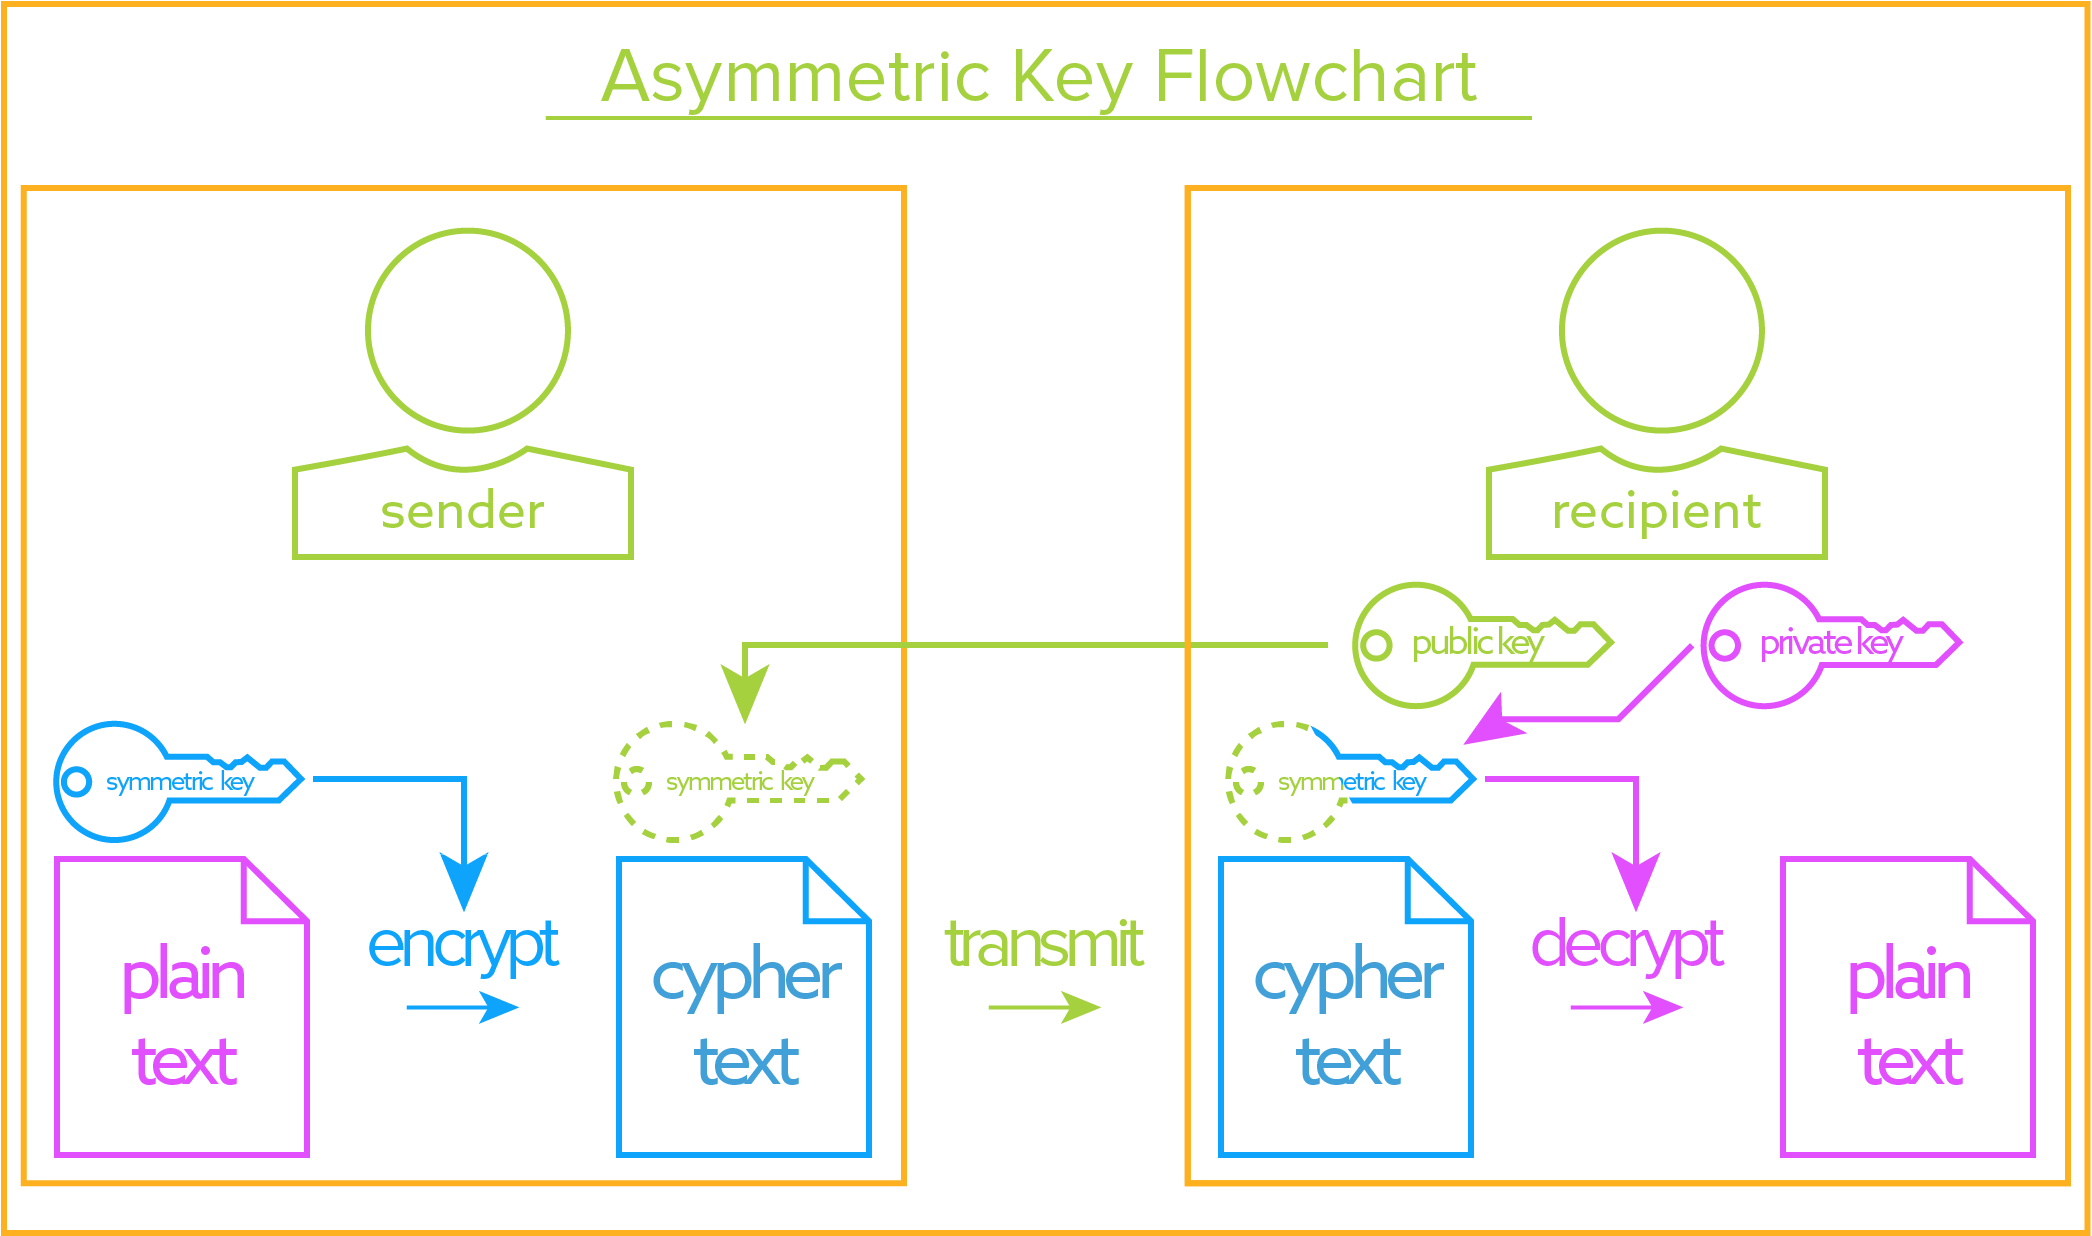 Asymmetric Key Flowchart